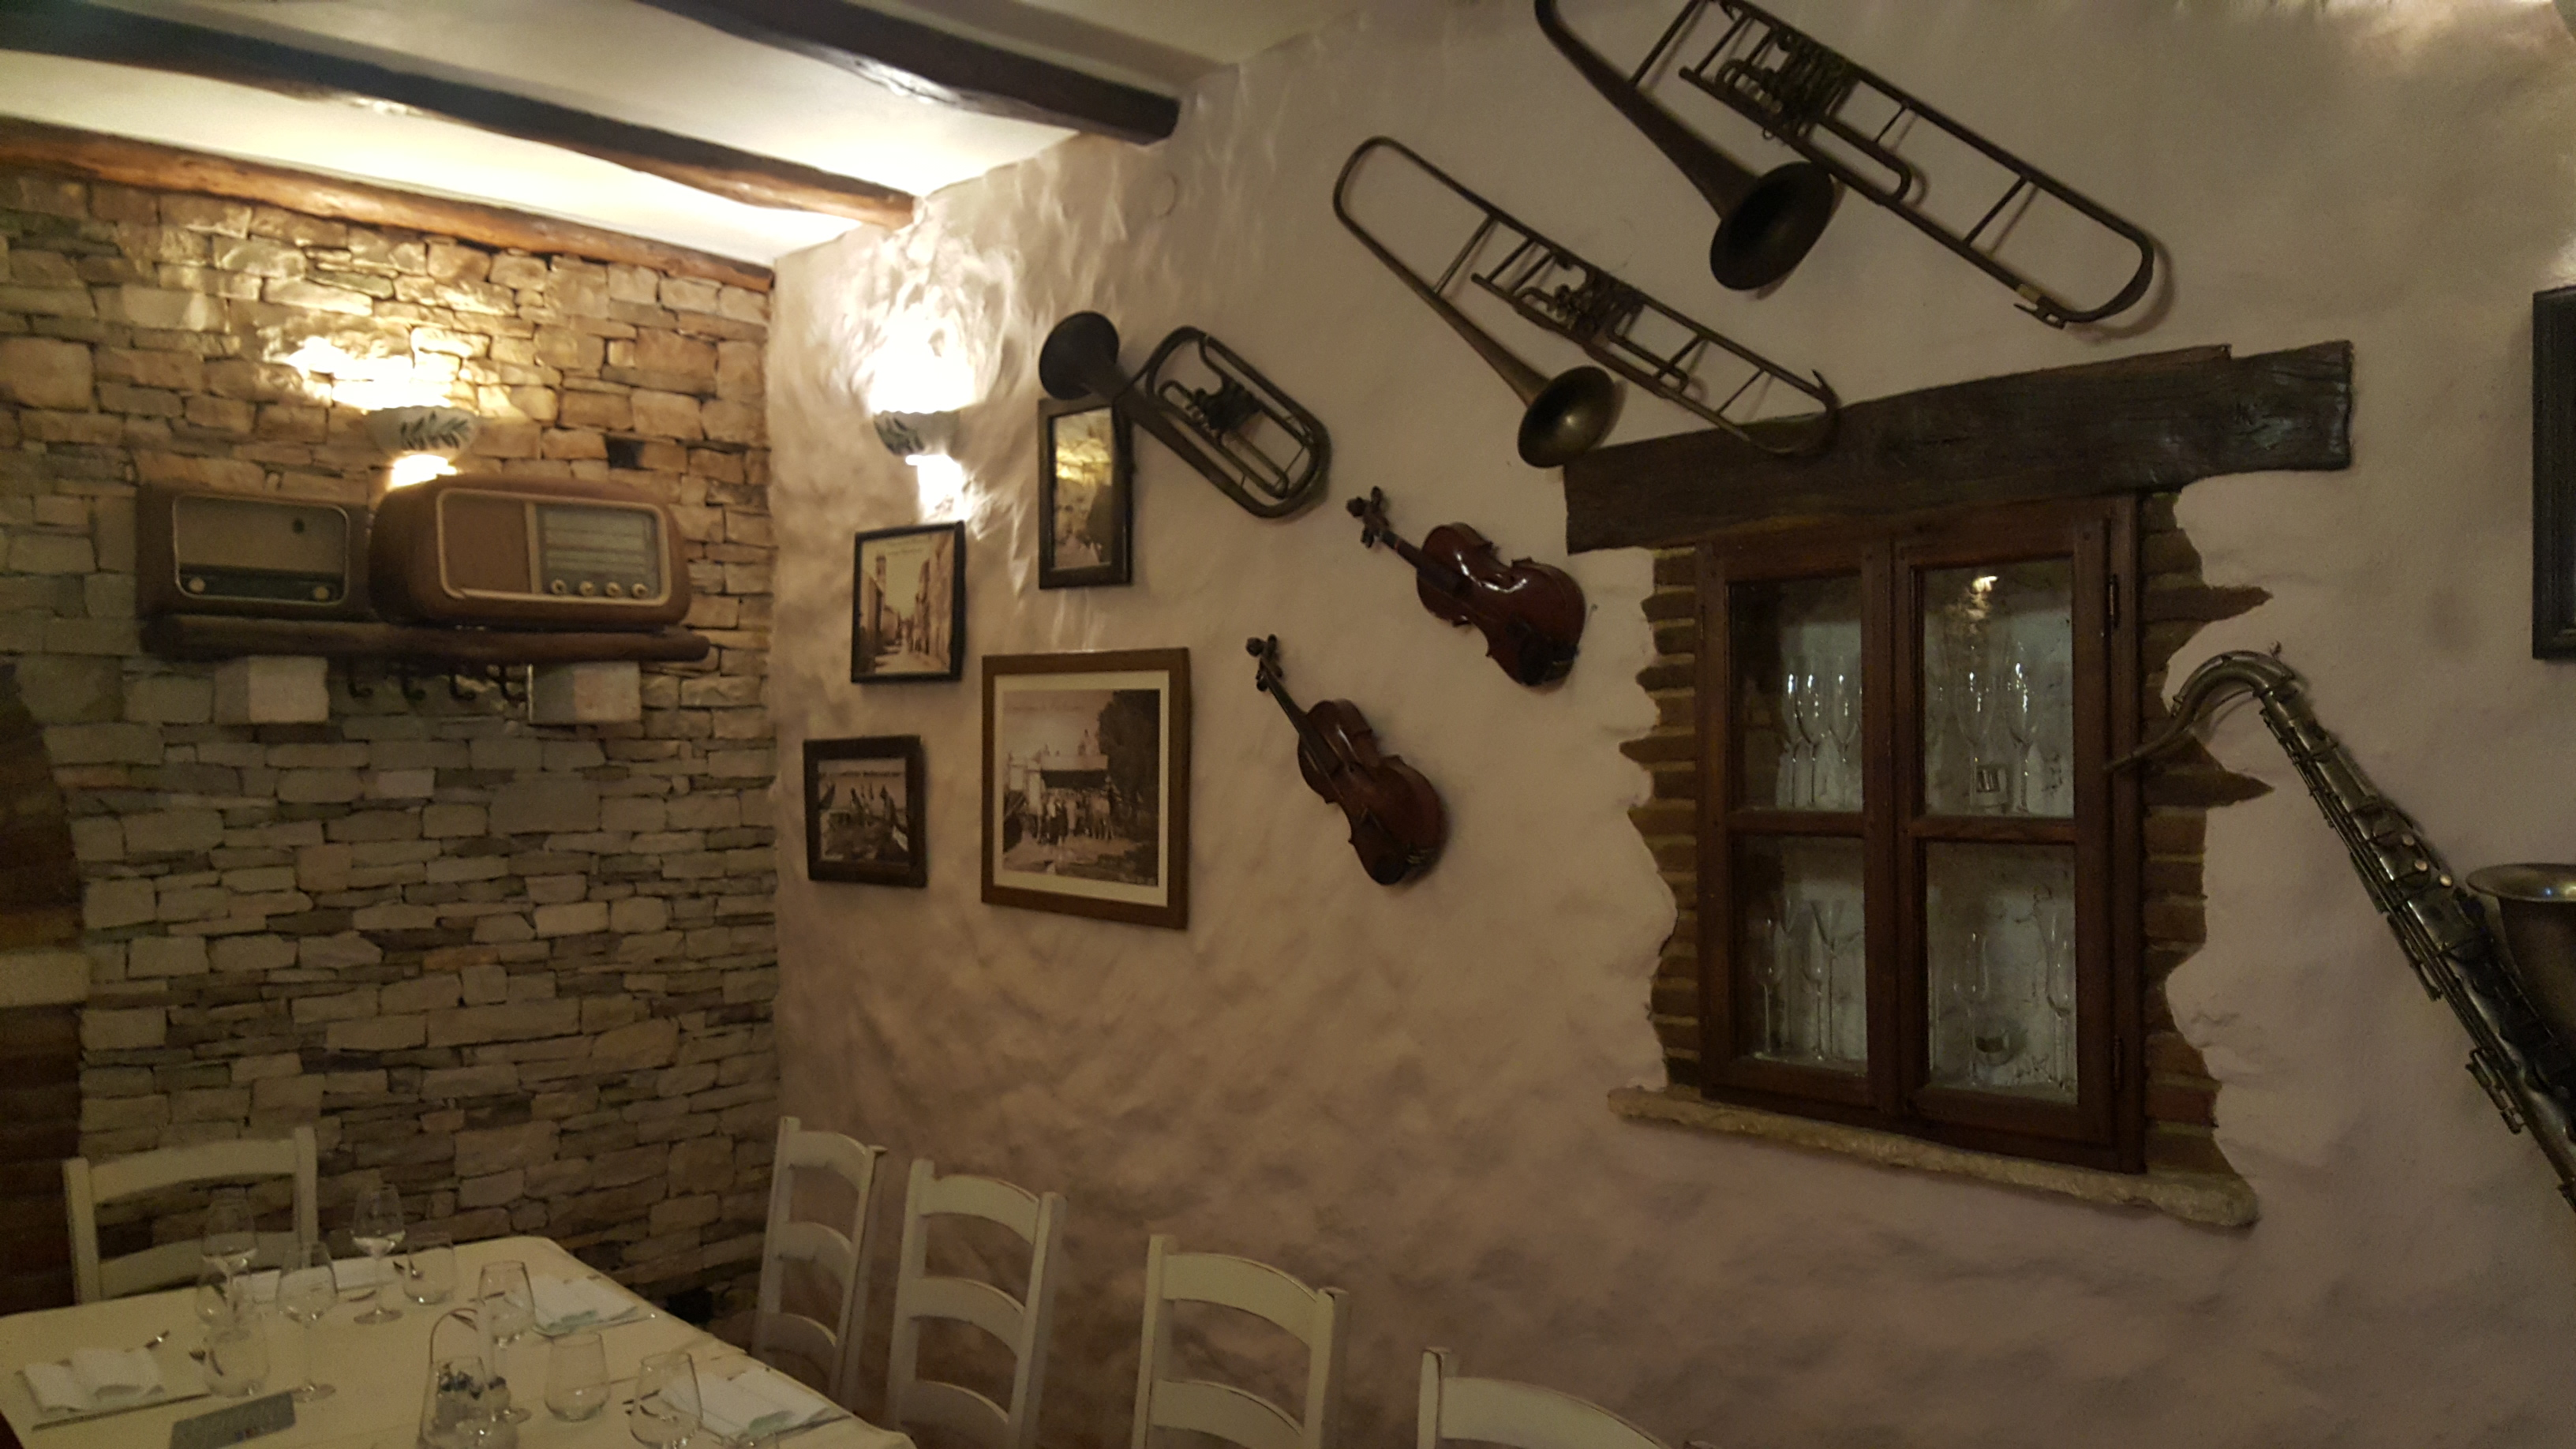 MORE THAN 10 YEARS OF TAVERN NONO IN PETROVIJA NEAR UMAG